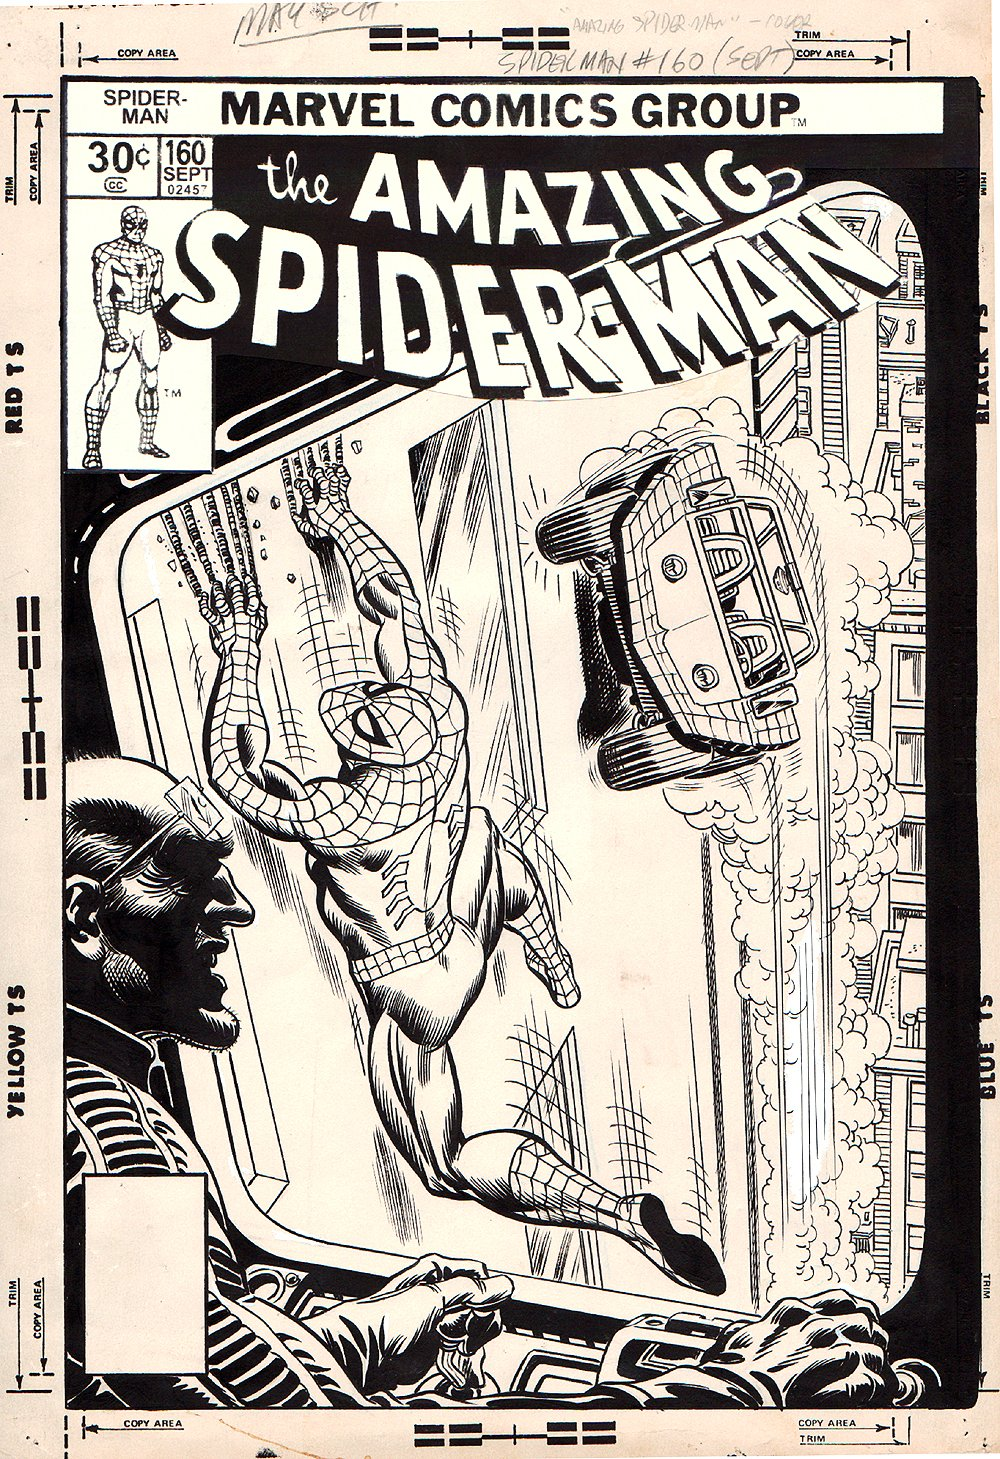 Amazing Spider-Man #160 Cover (1976) SOLD SOLD SOLD!